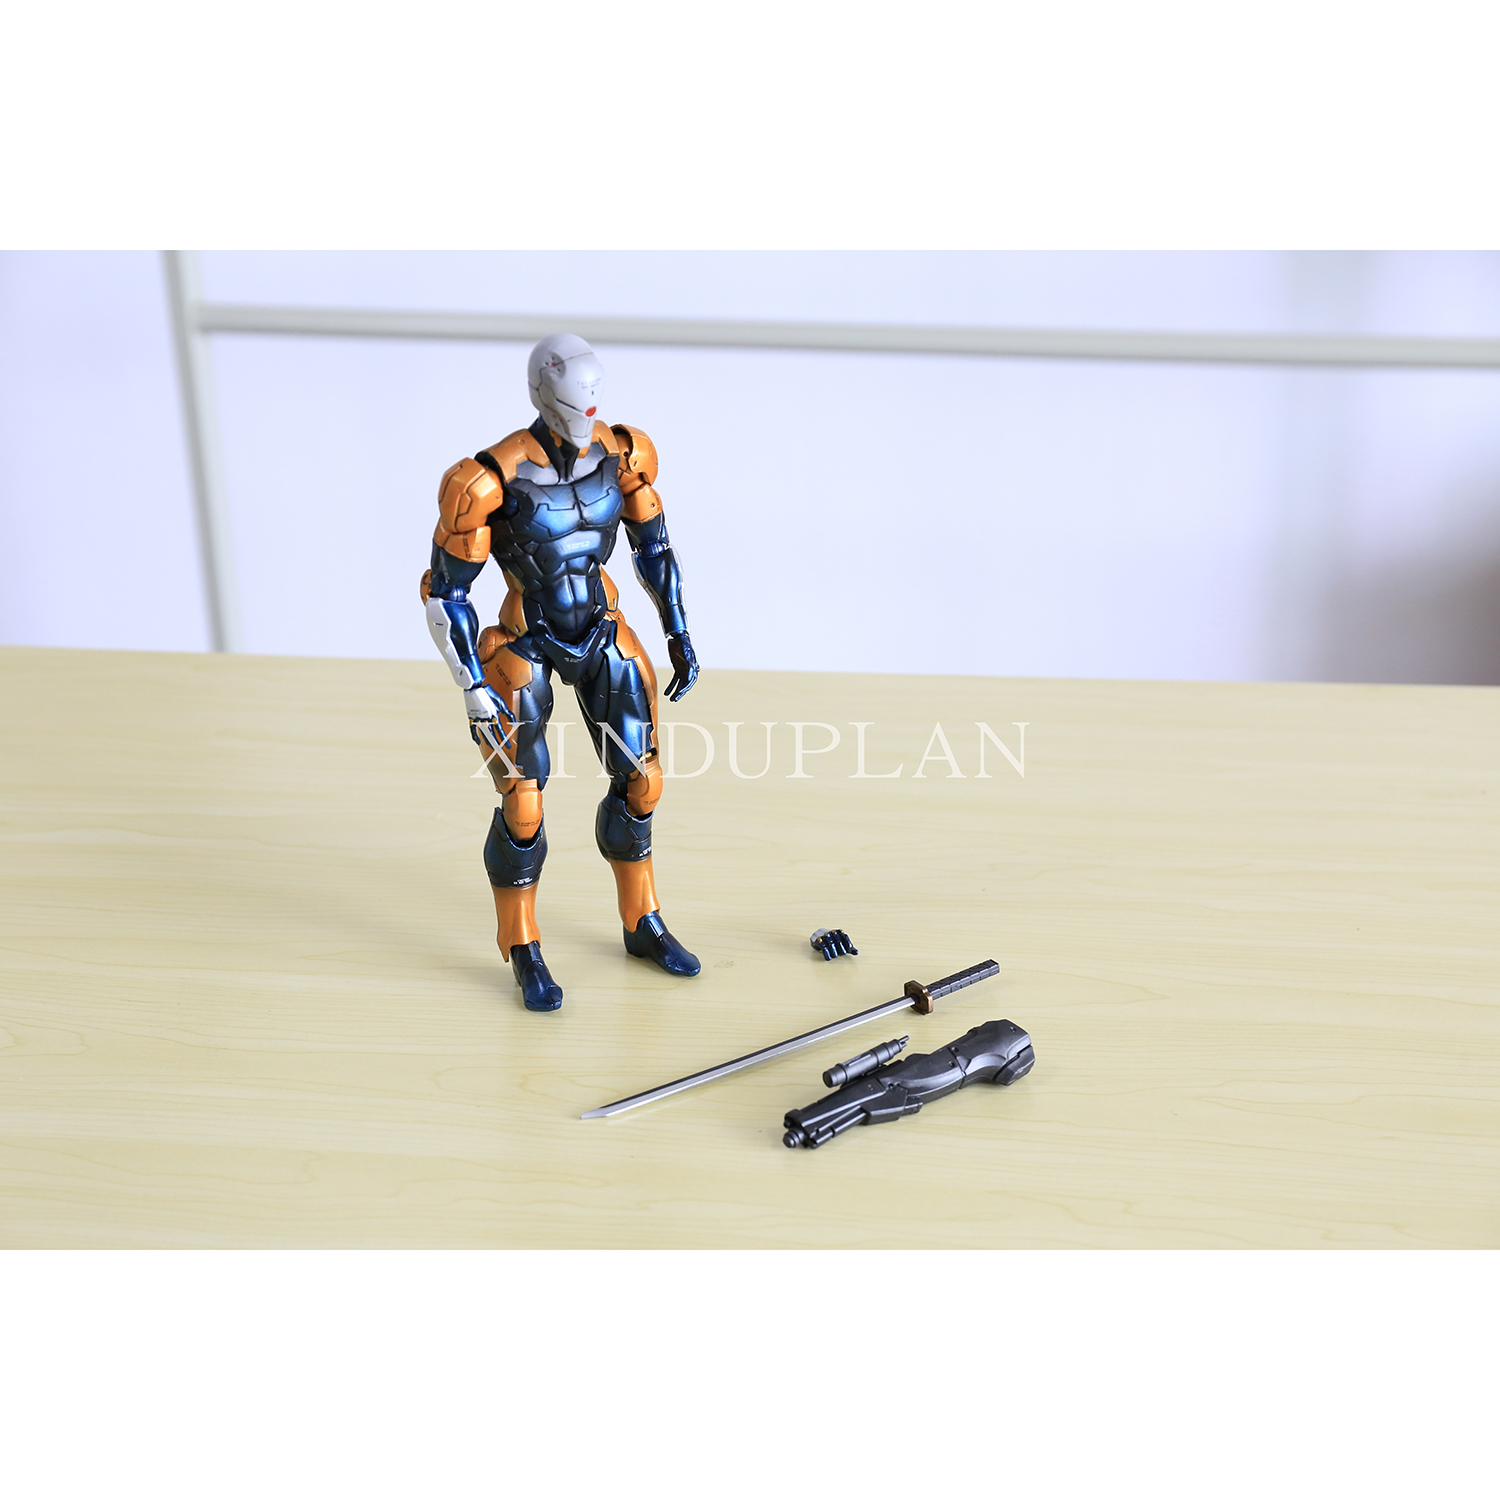 XINDUPLAN Play Arts Kai Metal Gear Solid V Gray Fox Action